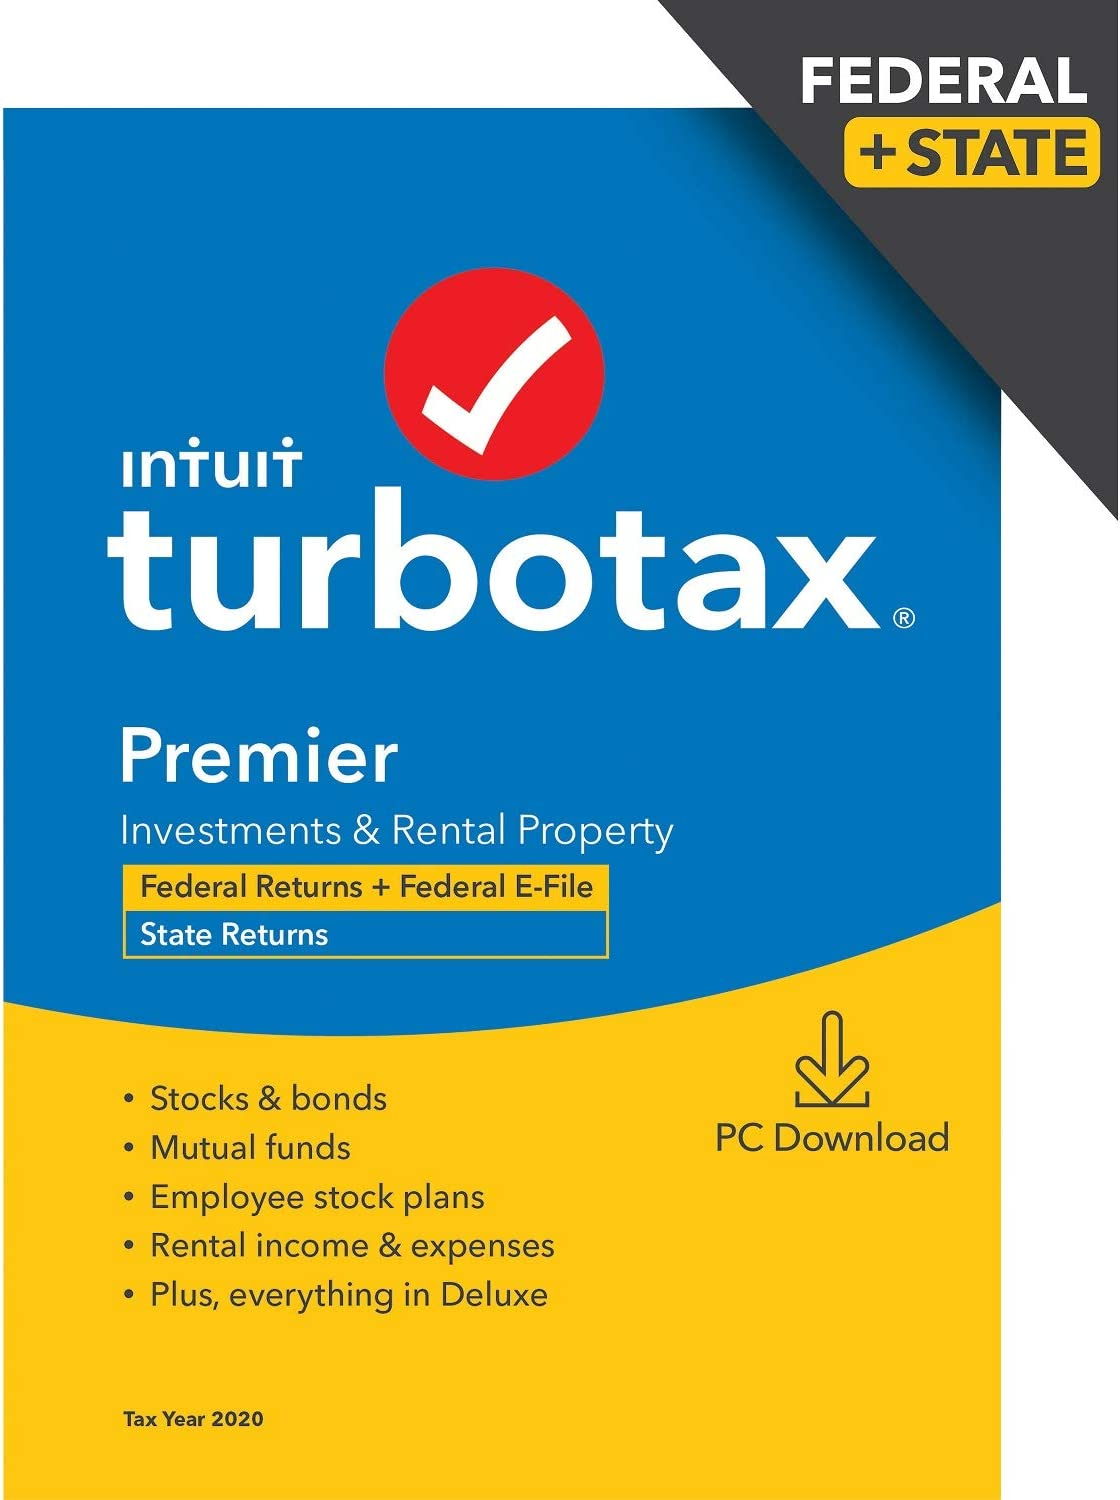 TurboTax Premier 2020 Desktop Tax Software, Federal and State Returns + Federal E-file (State E-file Additional) [Amazon Exclusive] [PC Download]